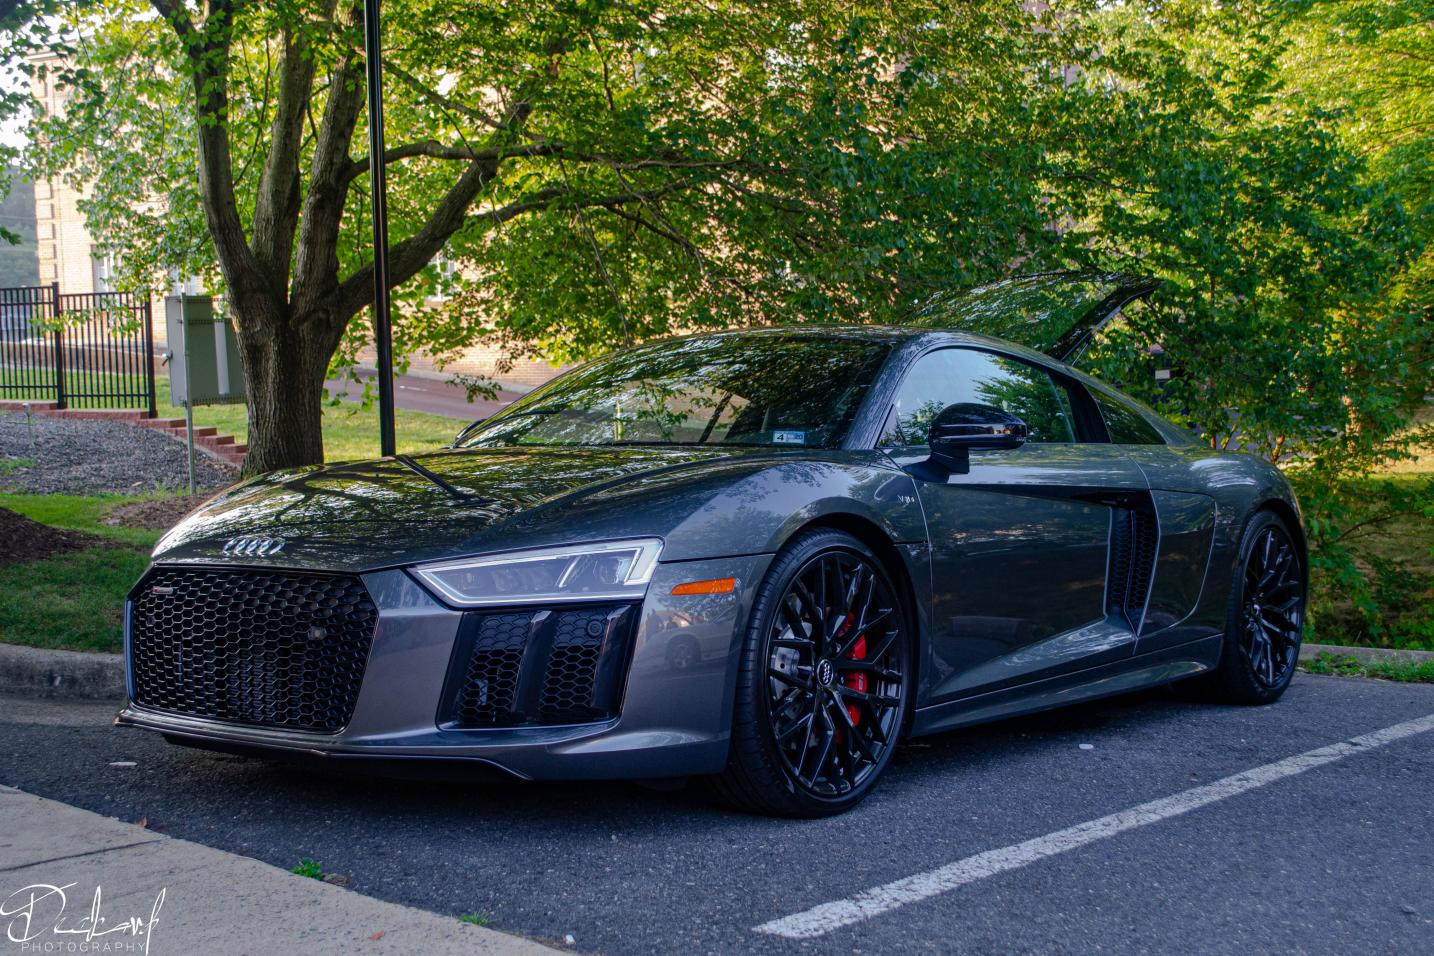 Who has the best looking R8 here?-img-4560.jpg